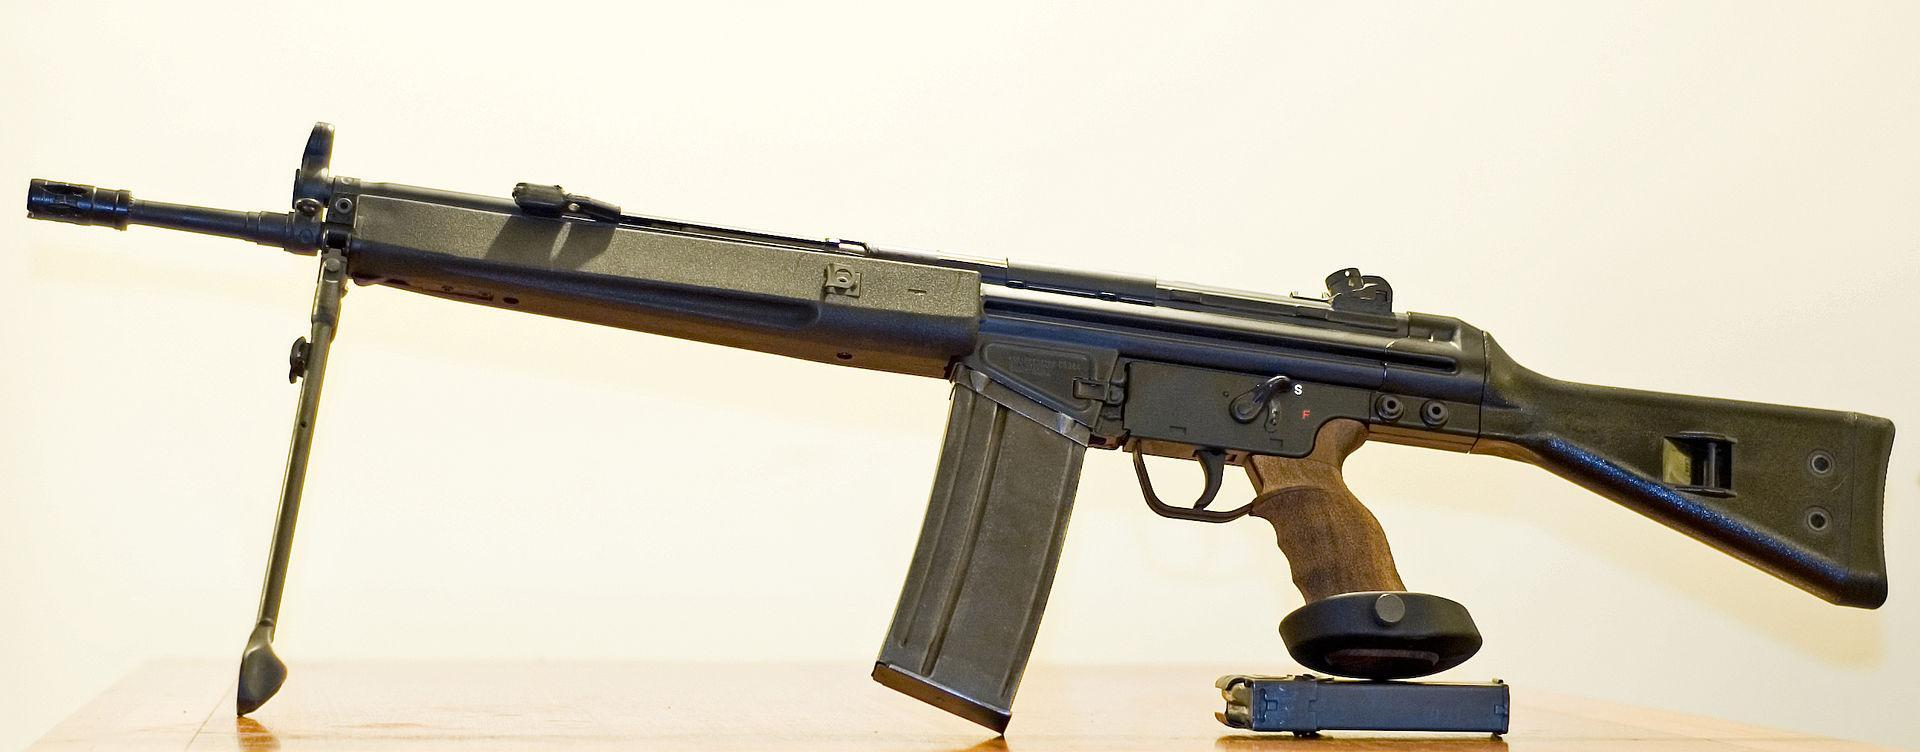 Greek-made HK91 copy (in United States designated as SAR-8) with optional PSG-1 grip, bipod and 30-round magazine